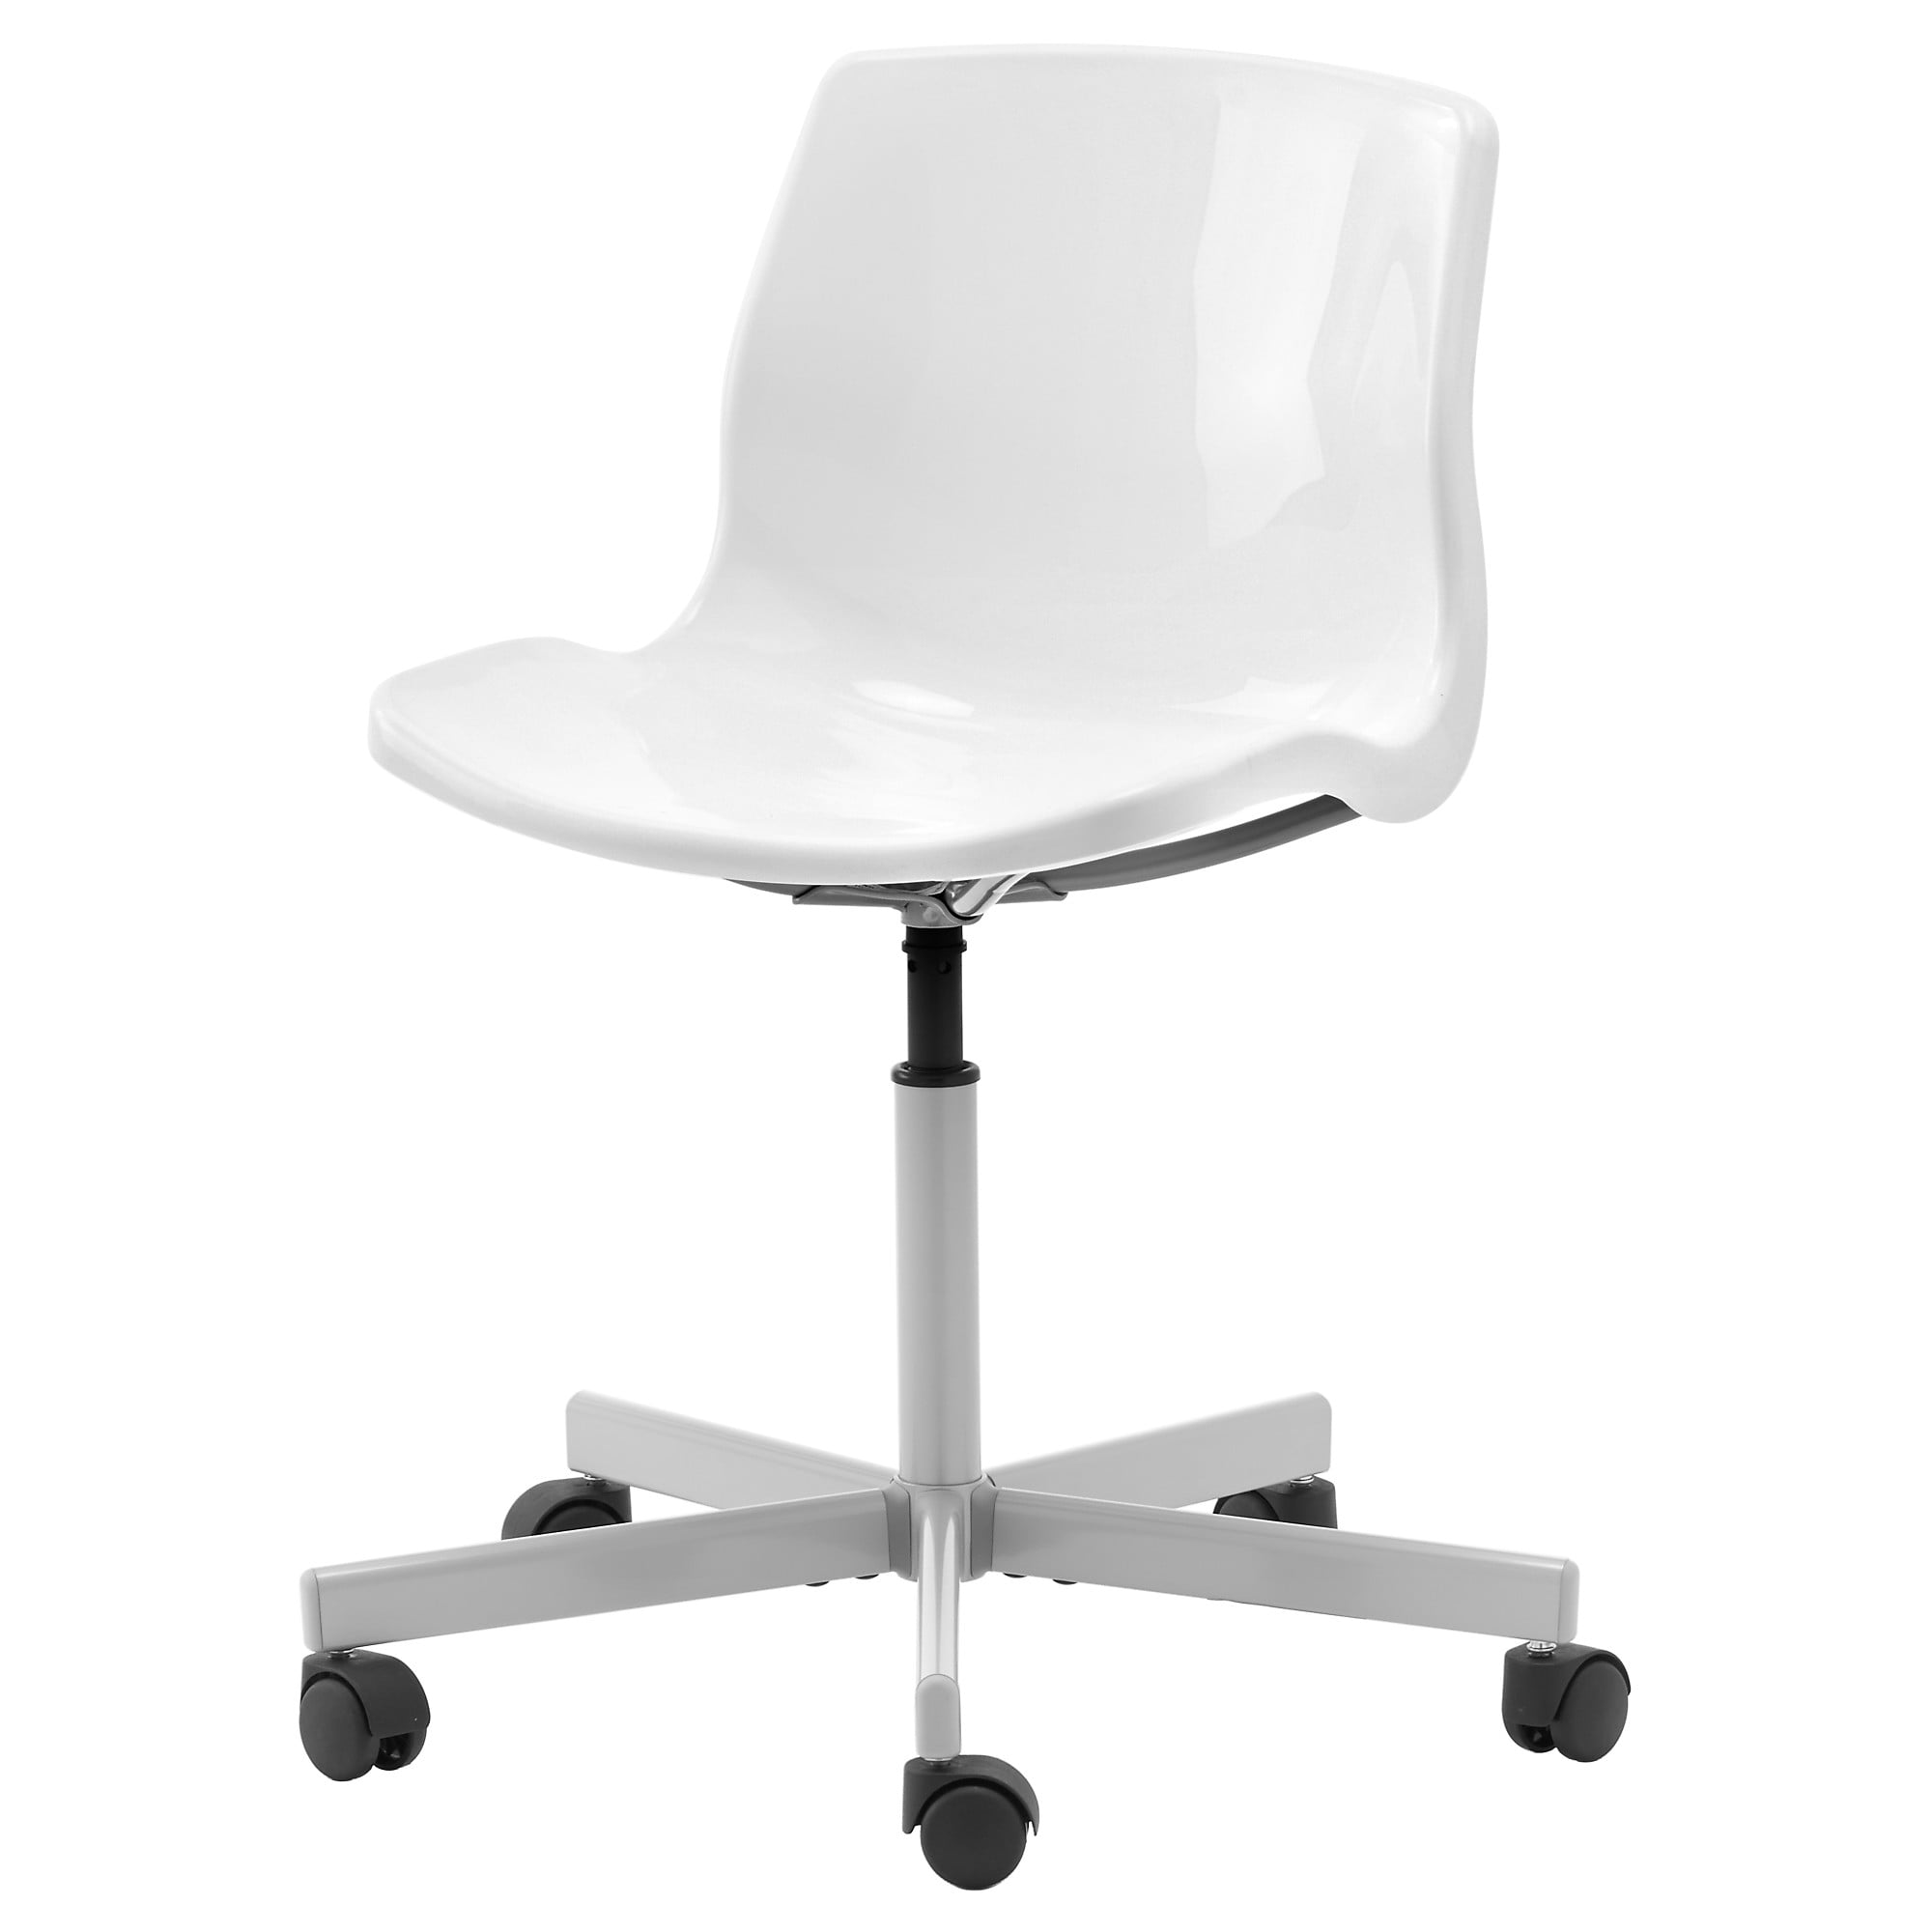 You Can Buy Just The Seat For A Scoop Chair Snille Swivel Chair